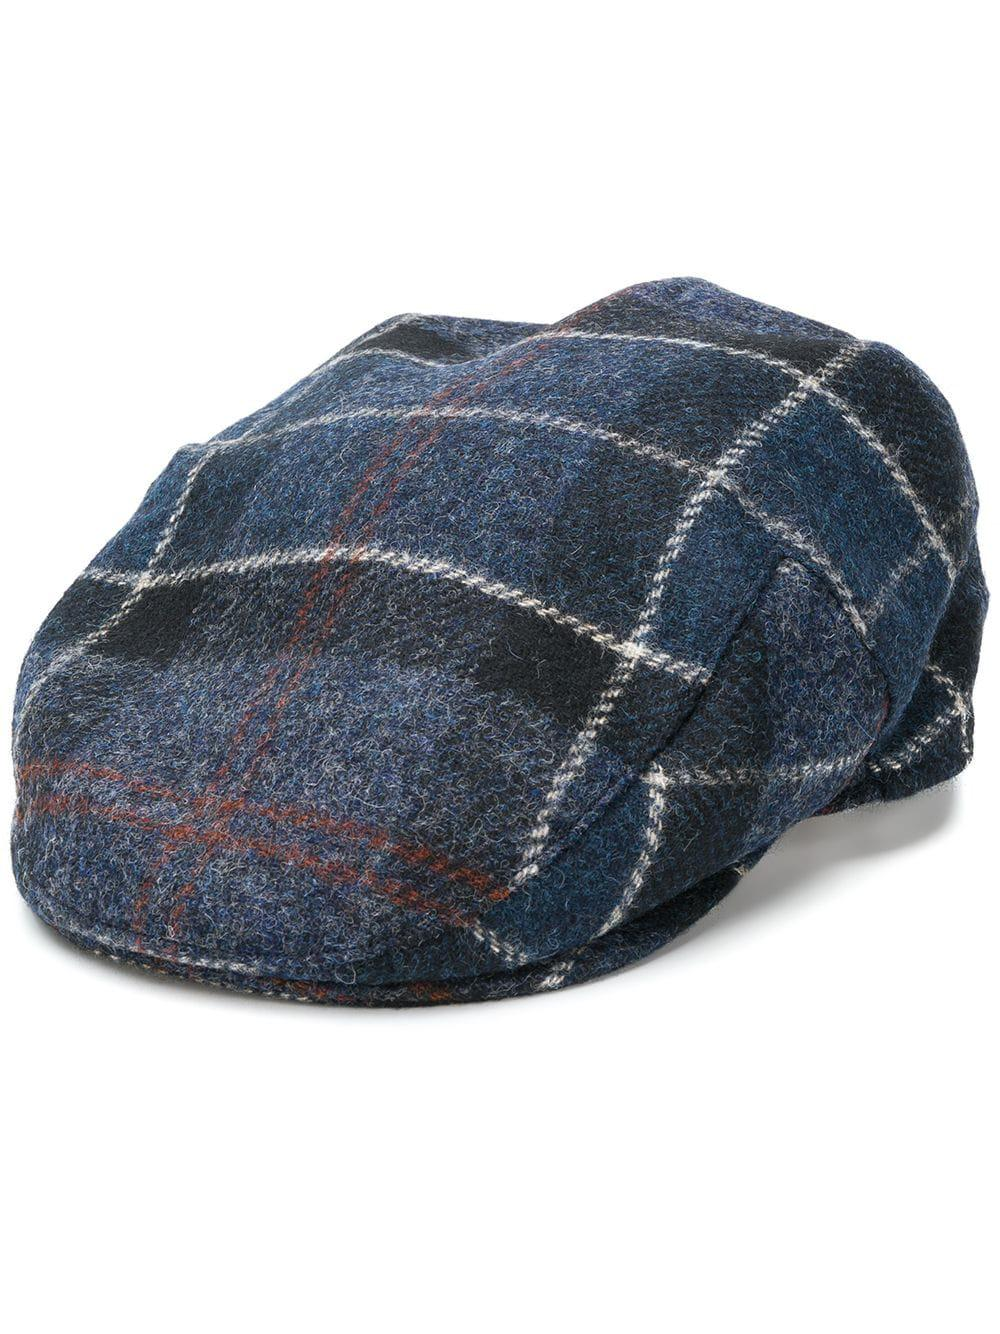 6058df8bb7c Barbour Checked Flat Cap in Blue for Men - Save 2.898550724637687 ...